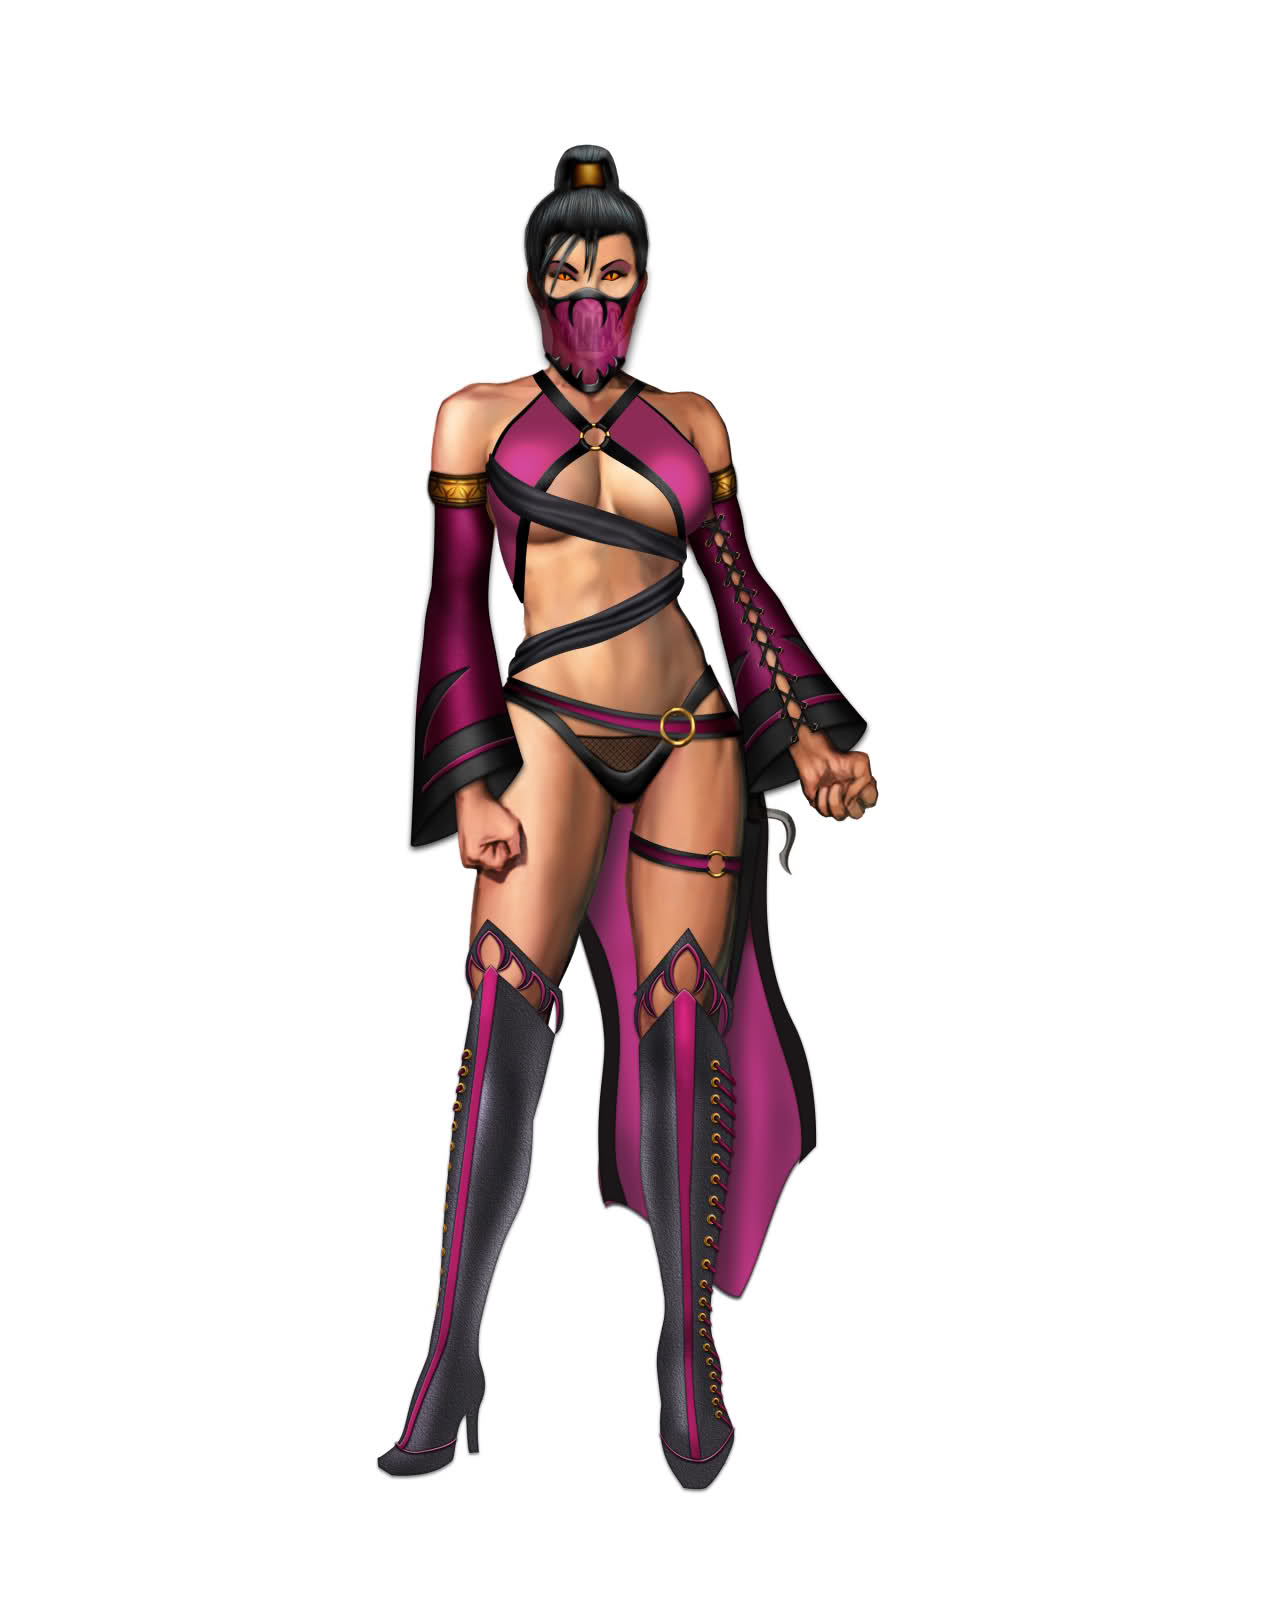 Mileena-Alternate-Costume-Concept.jpg